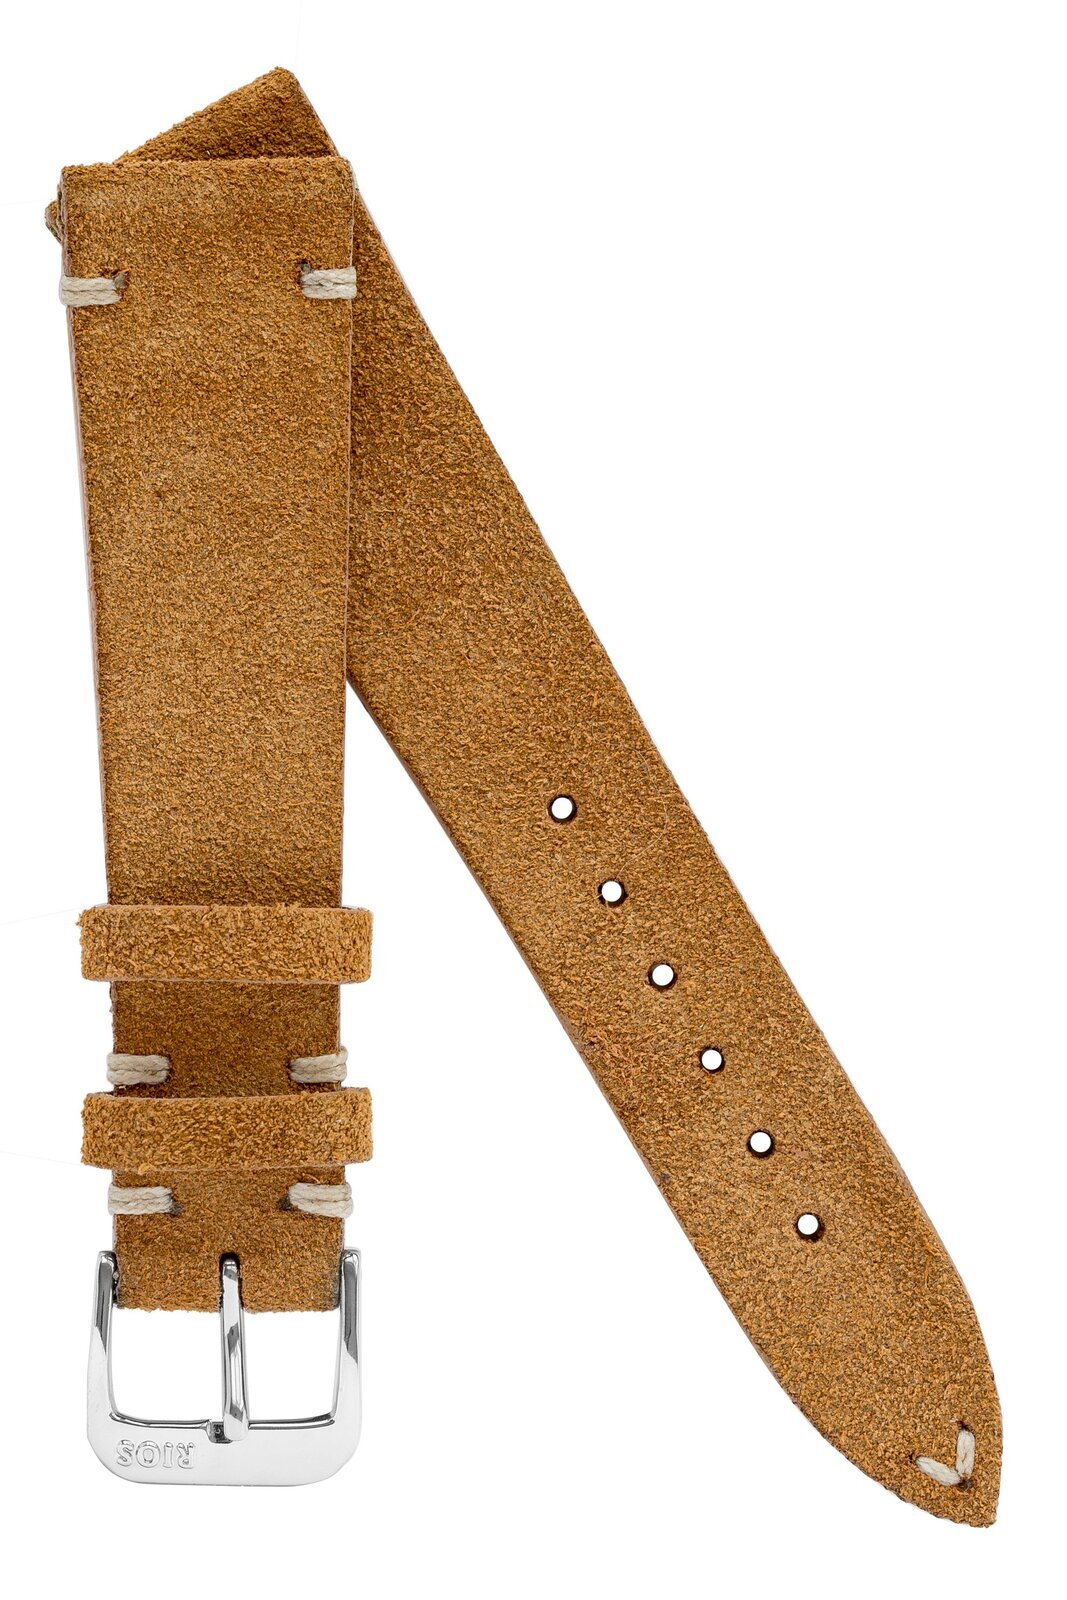 18mm Rios1931 HUDSON Genuine Suede Leather Watch Strap in COGNAC